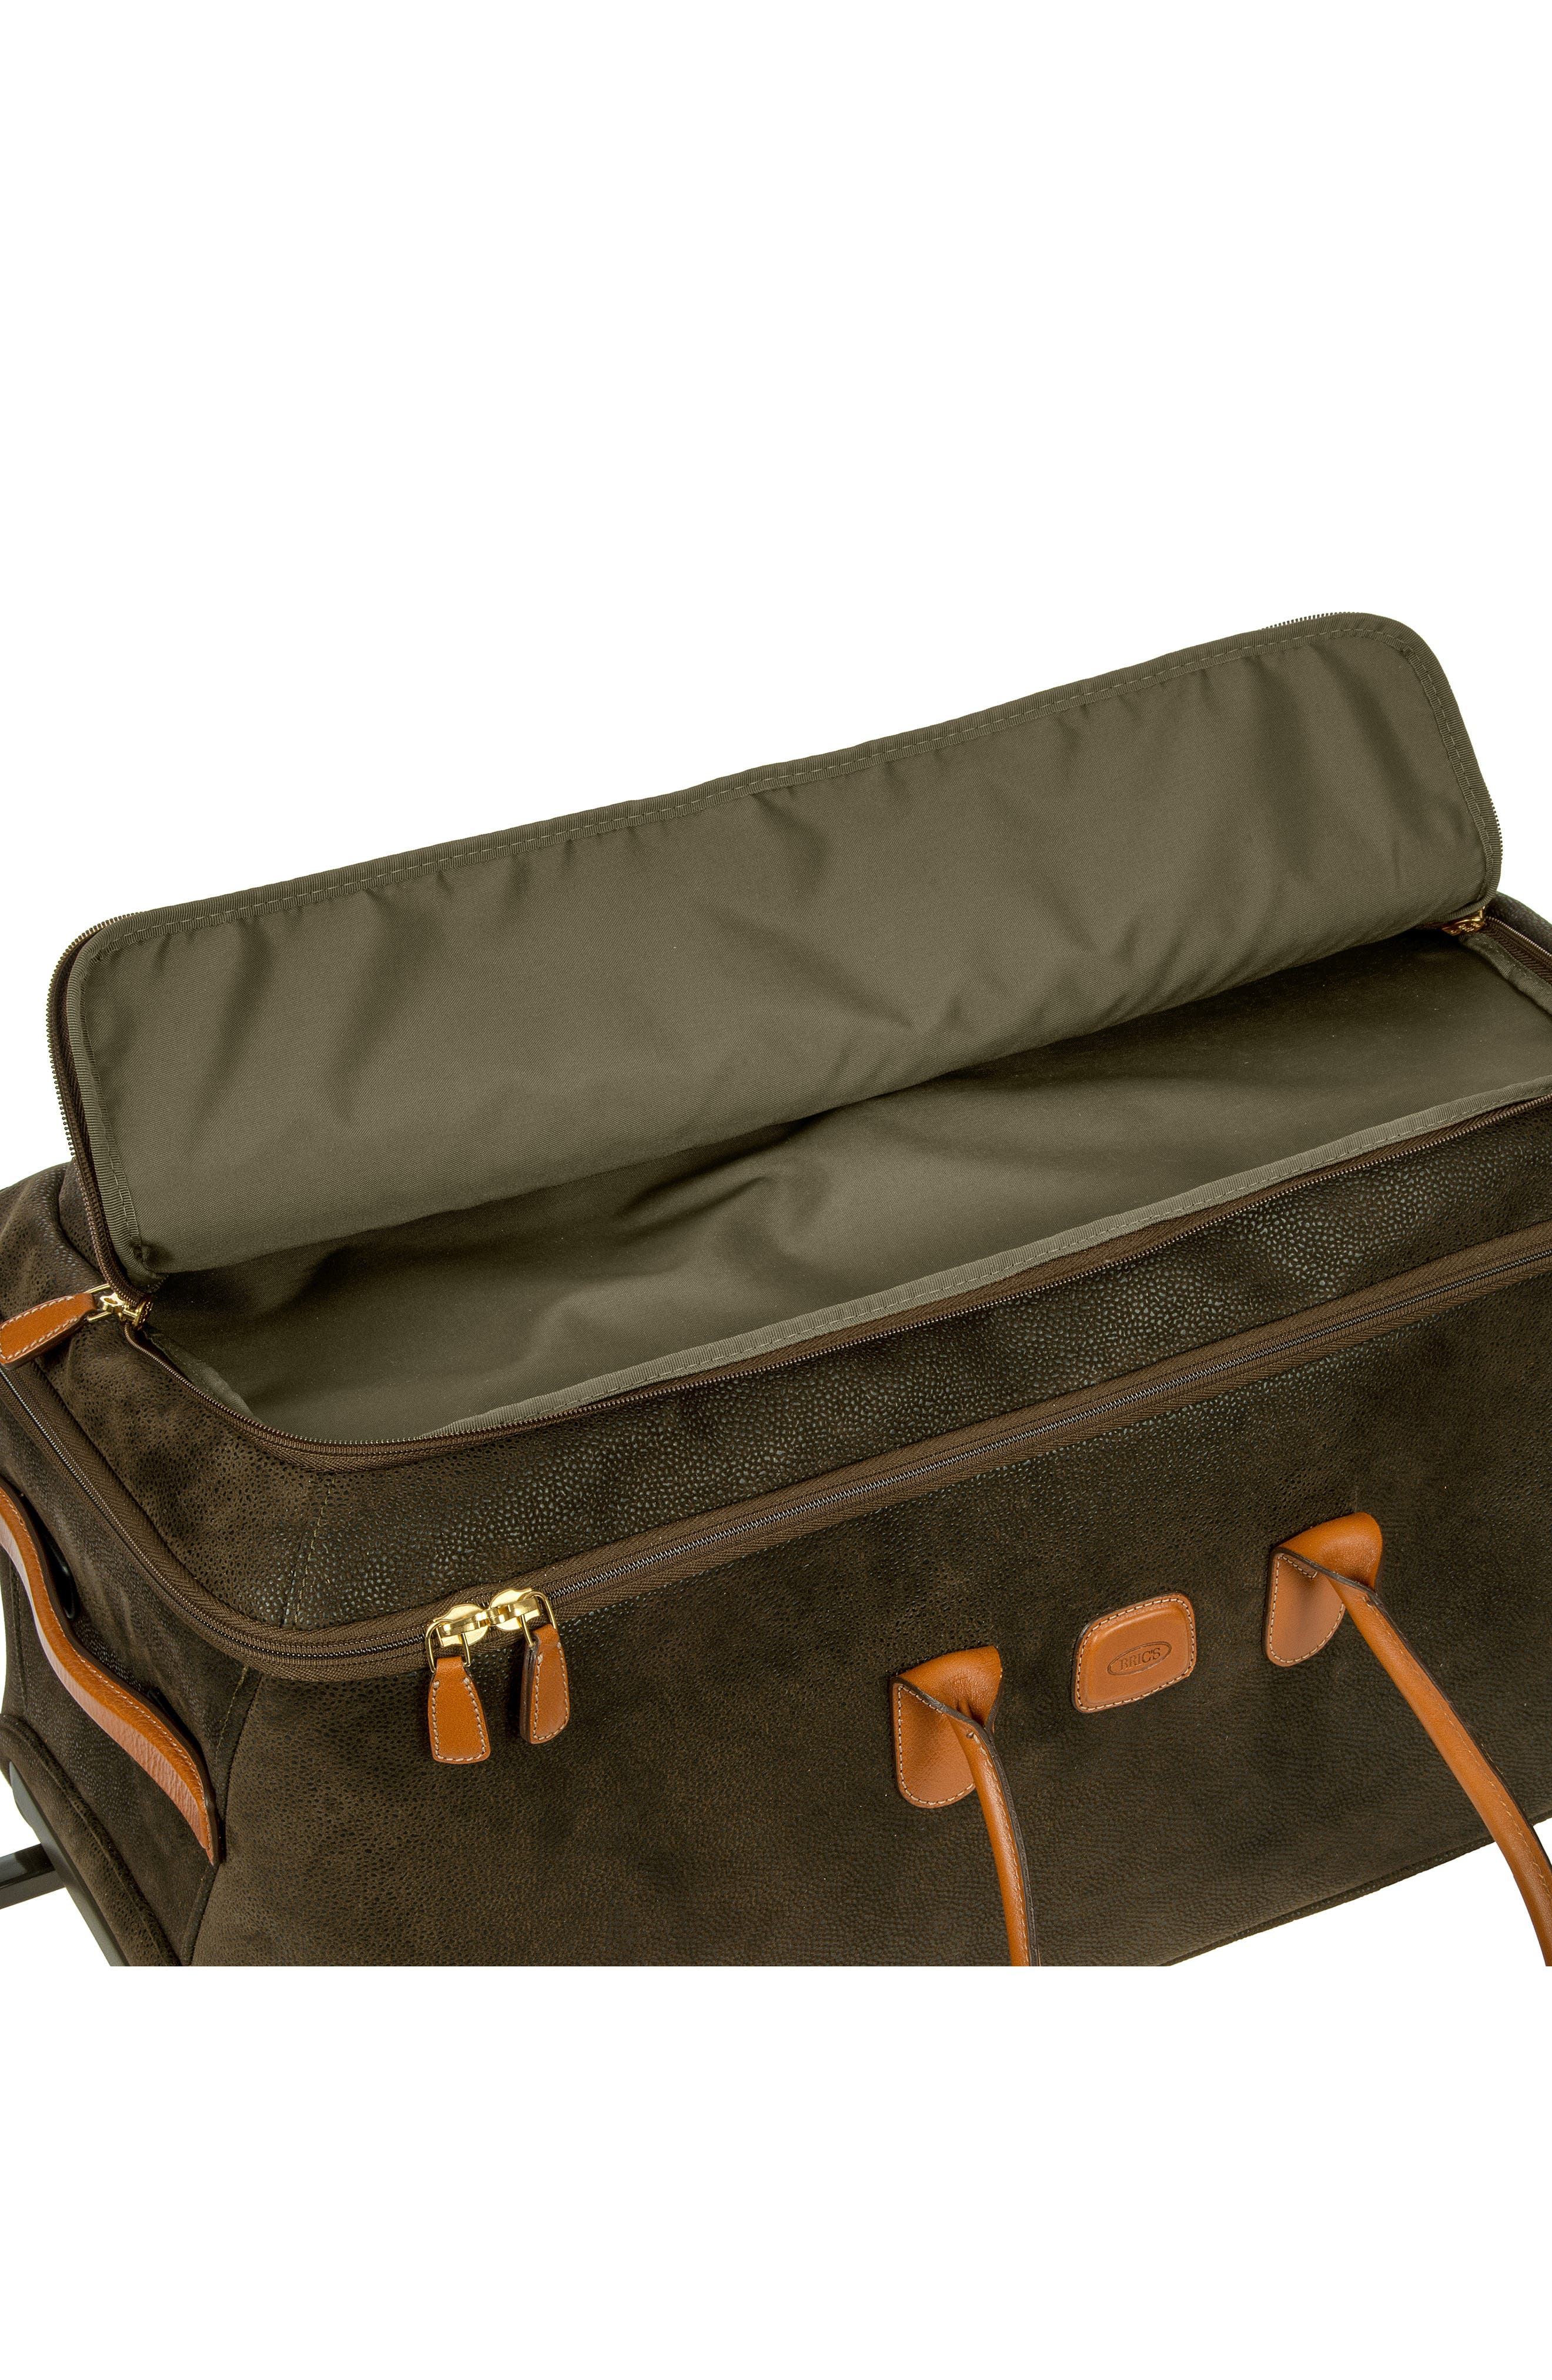 Life Collection 28-Inch Rolling Duffel Bag,                             Alternate thumbnail 5, color,                             Olive